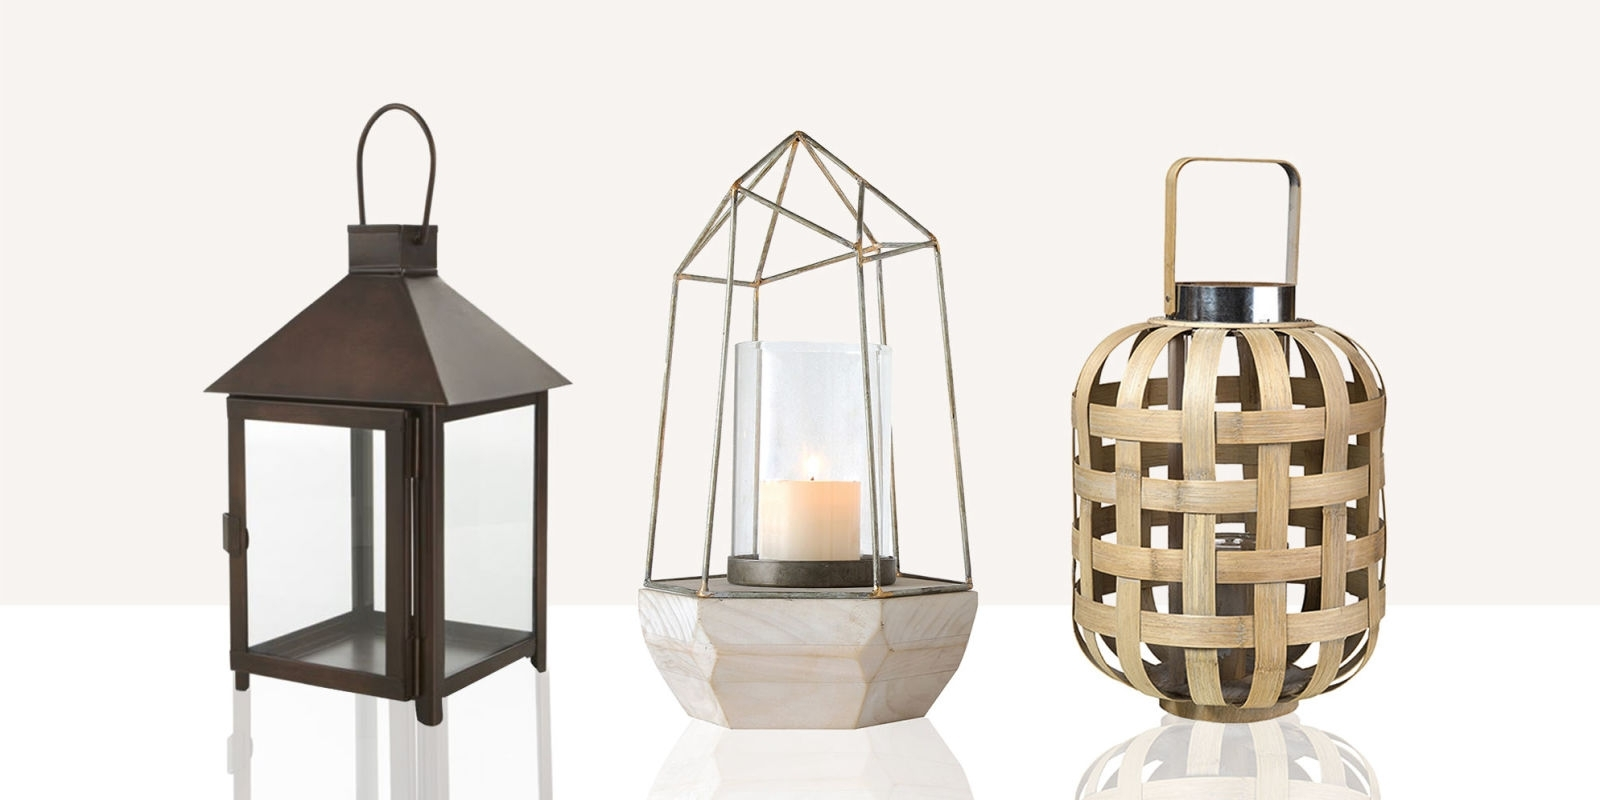 Preferred Lighting: Brighten Up Your Space With Stunning Candle Lanterns With Outdoor Lanterns With Timers (View 12 of 20)